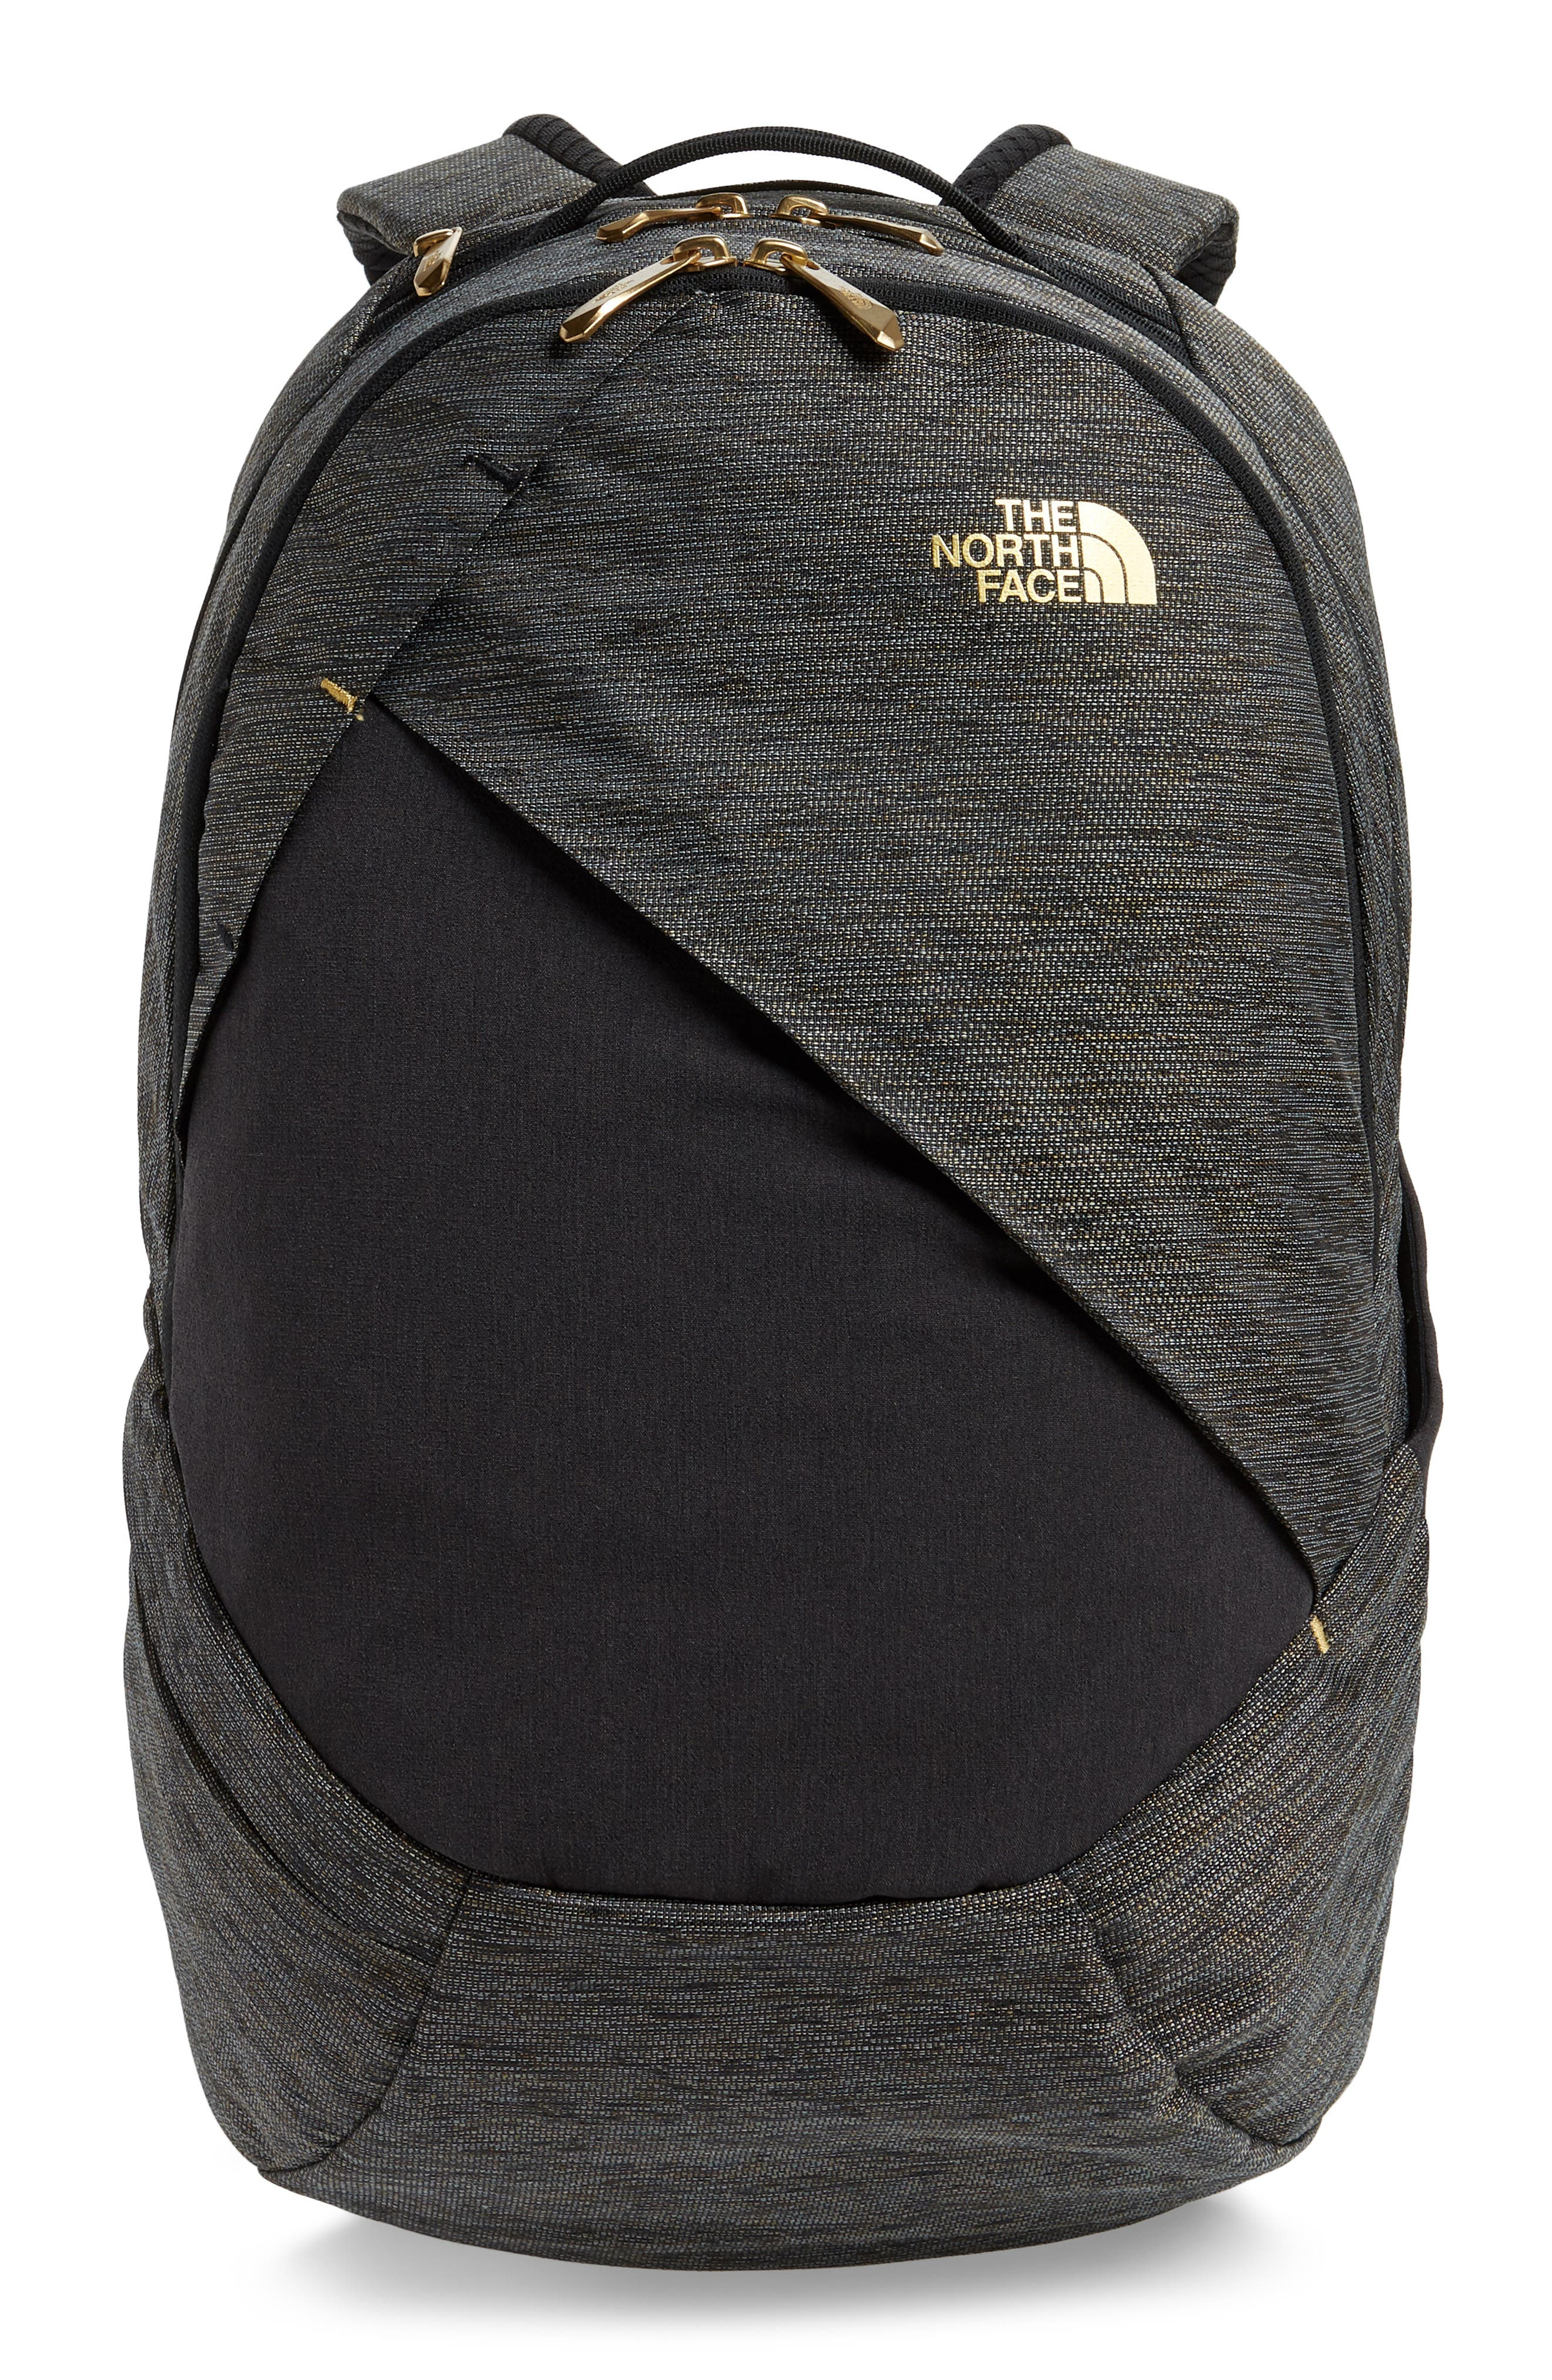 b9c874513 The North Face 'Isabella' Backpack - Black